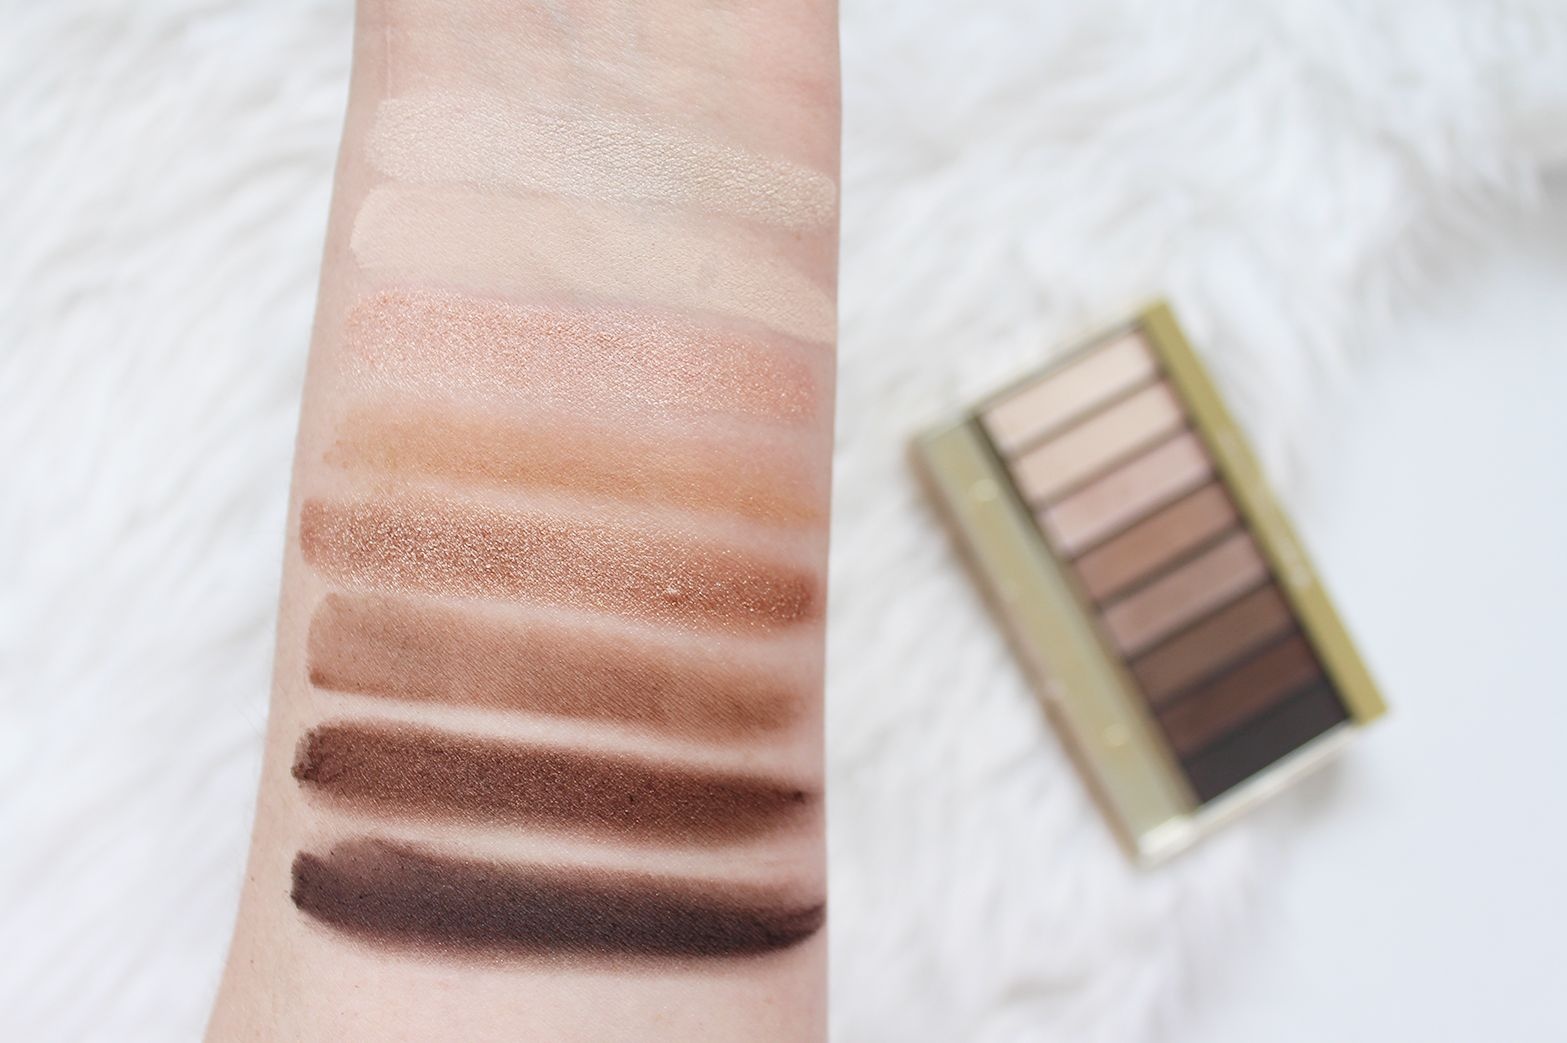 dff7807a6a3 MAX FACTOR | Masterpiece Nudes Contouring Eyeshadow Palette in Cappuccino  Nudes + Voluptuous Mascara - Review + Swatches - CassandraMyee